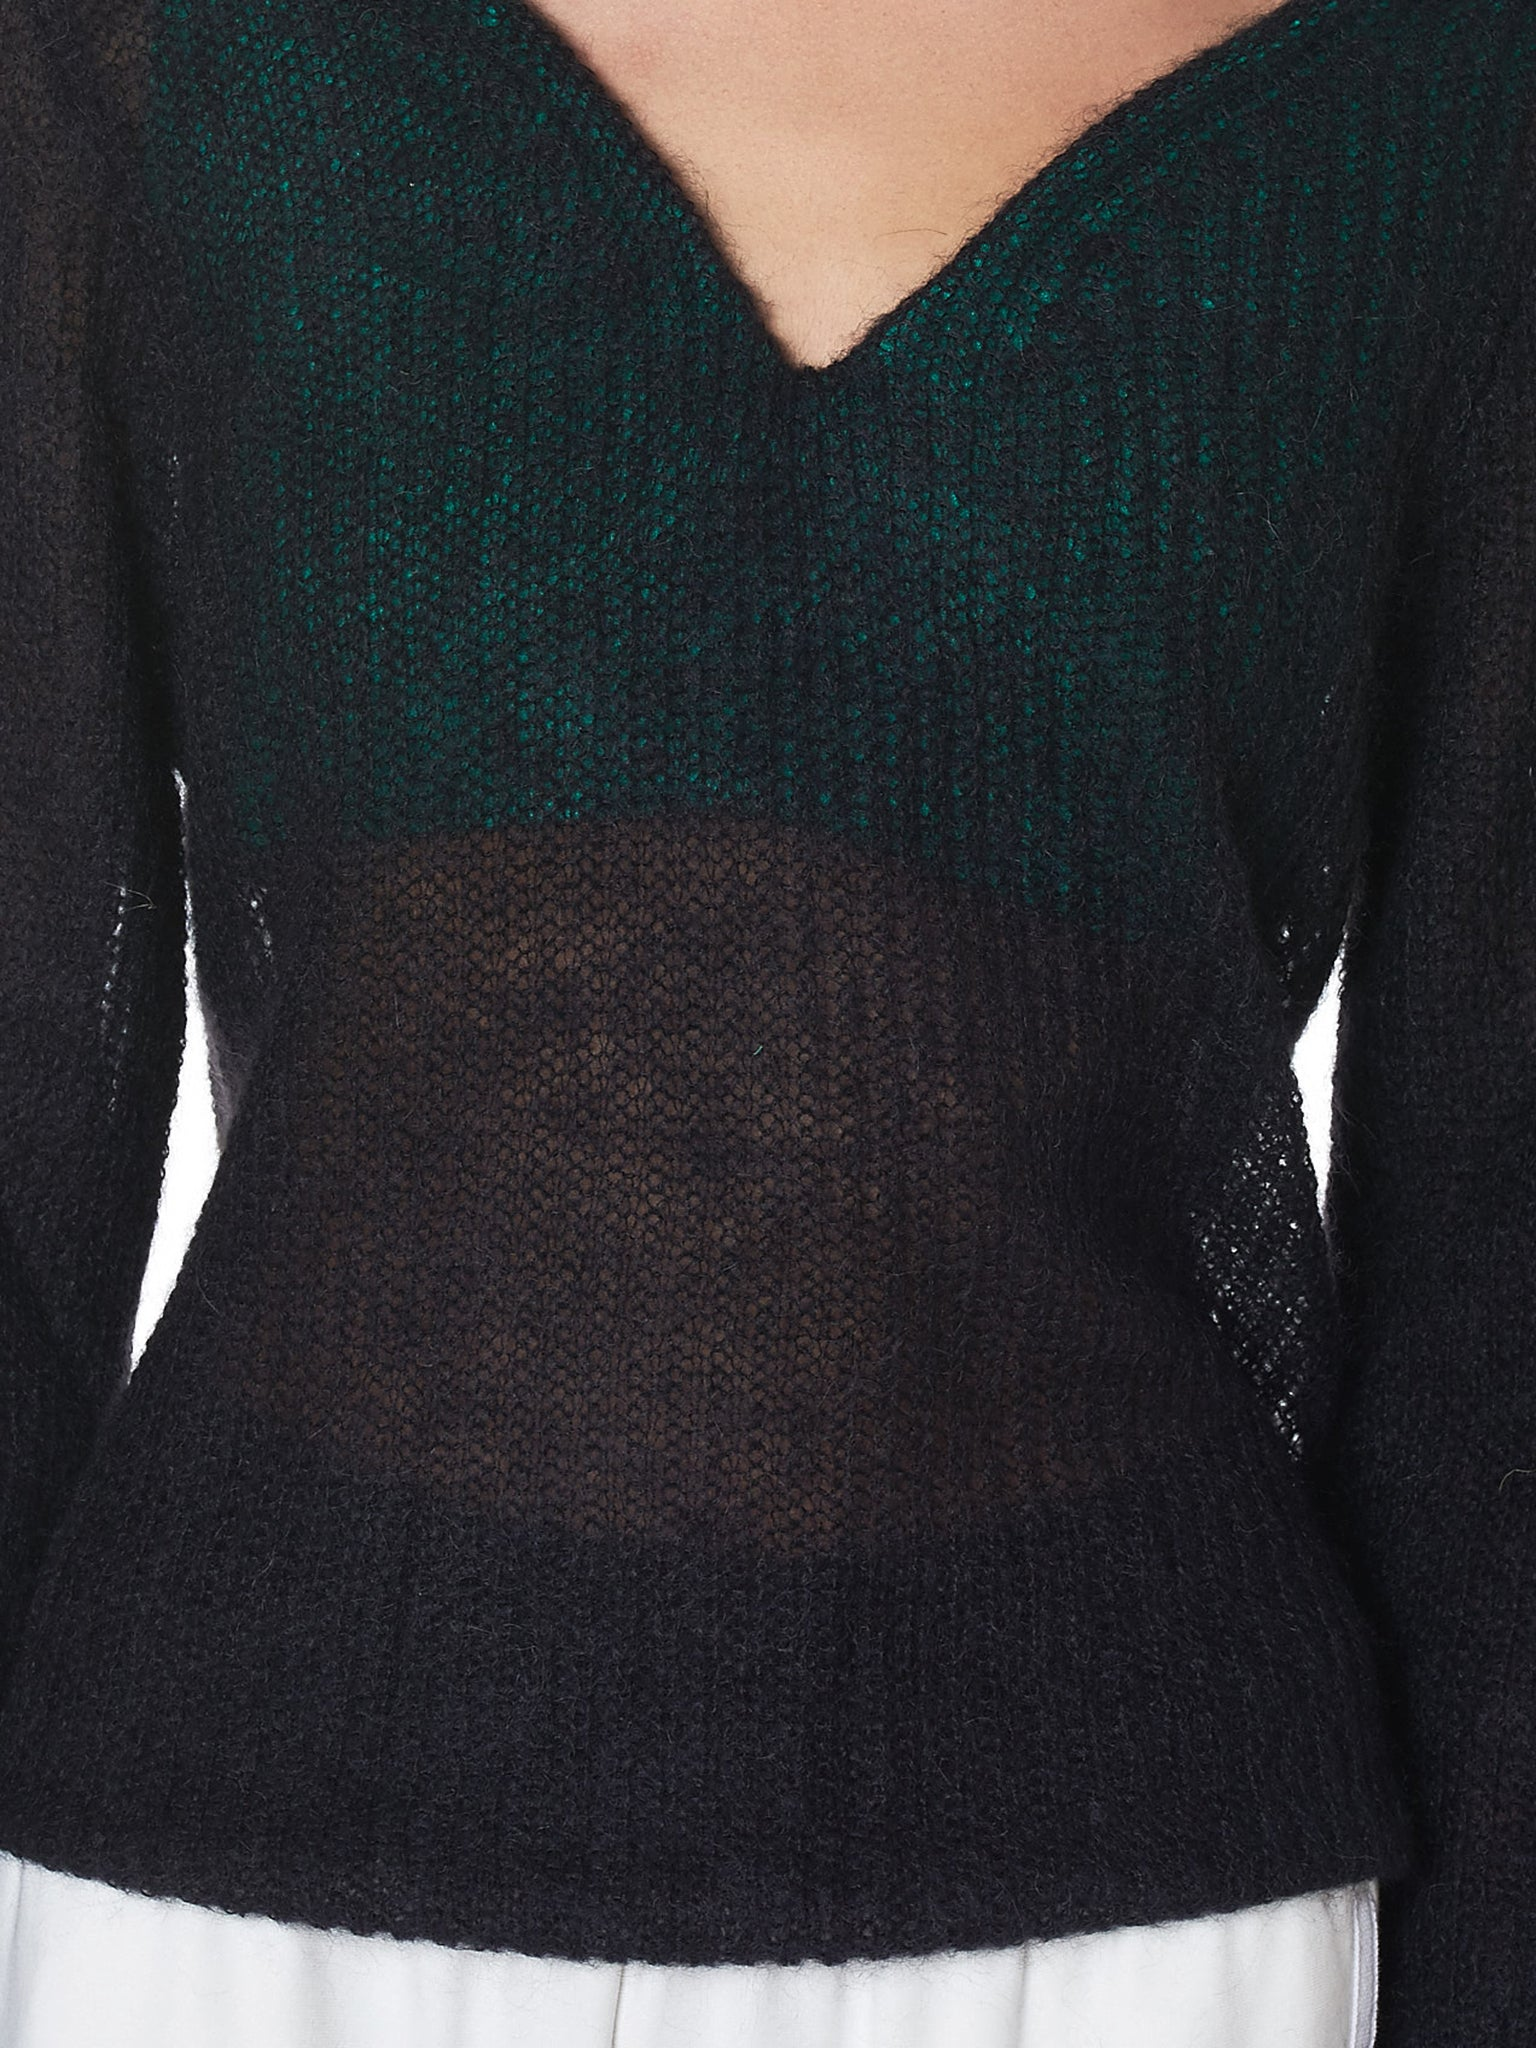 Y/Project Sweater - Hlorenzo Detail 3